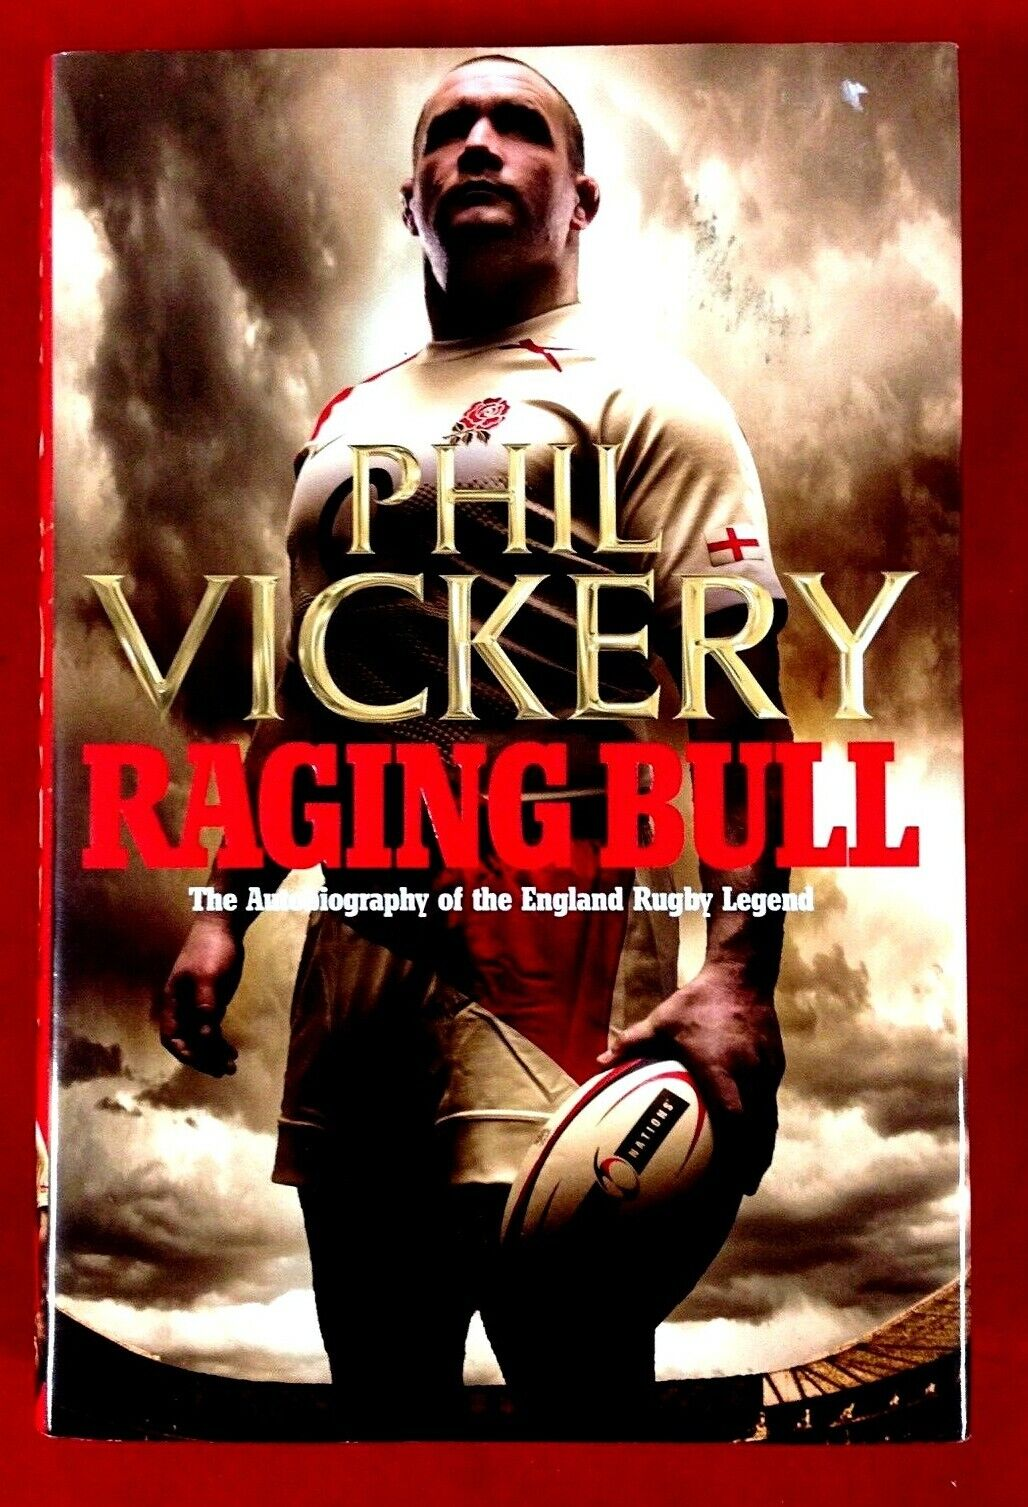 89a19daa5899e4 Raging Bull: My Autobiography by Phil Vickery (Hardback, 1st Ed, Signed,  2010)